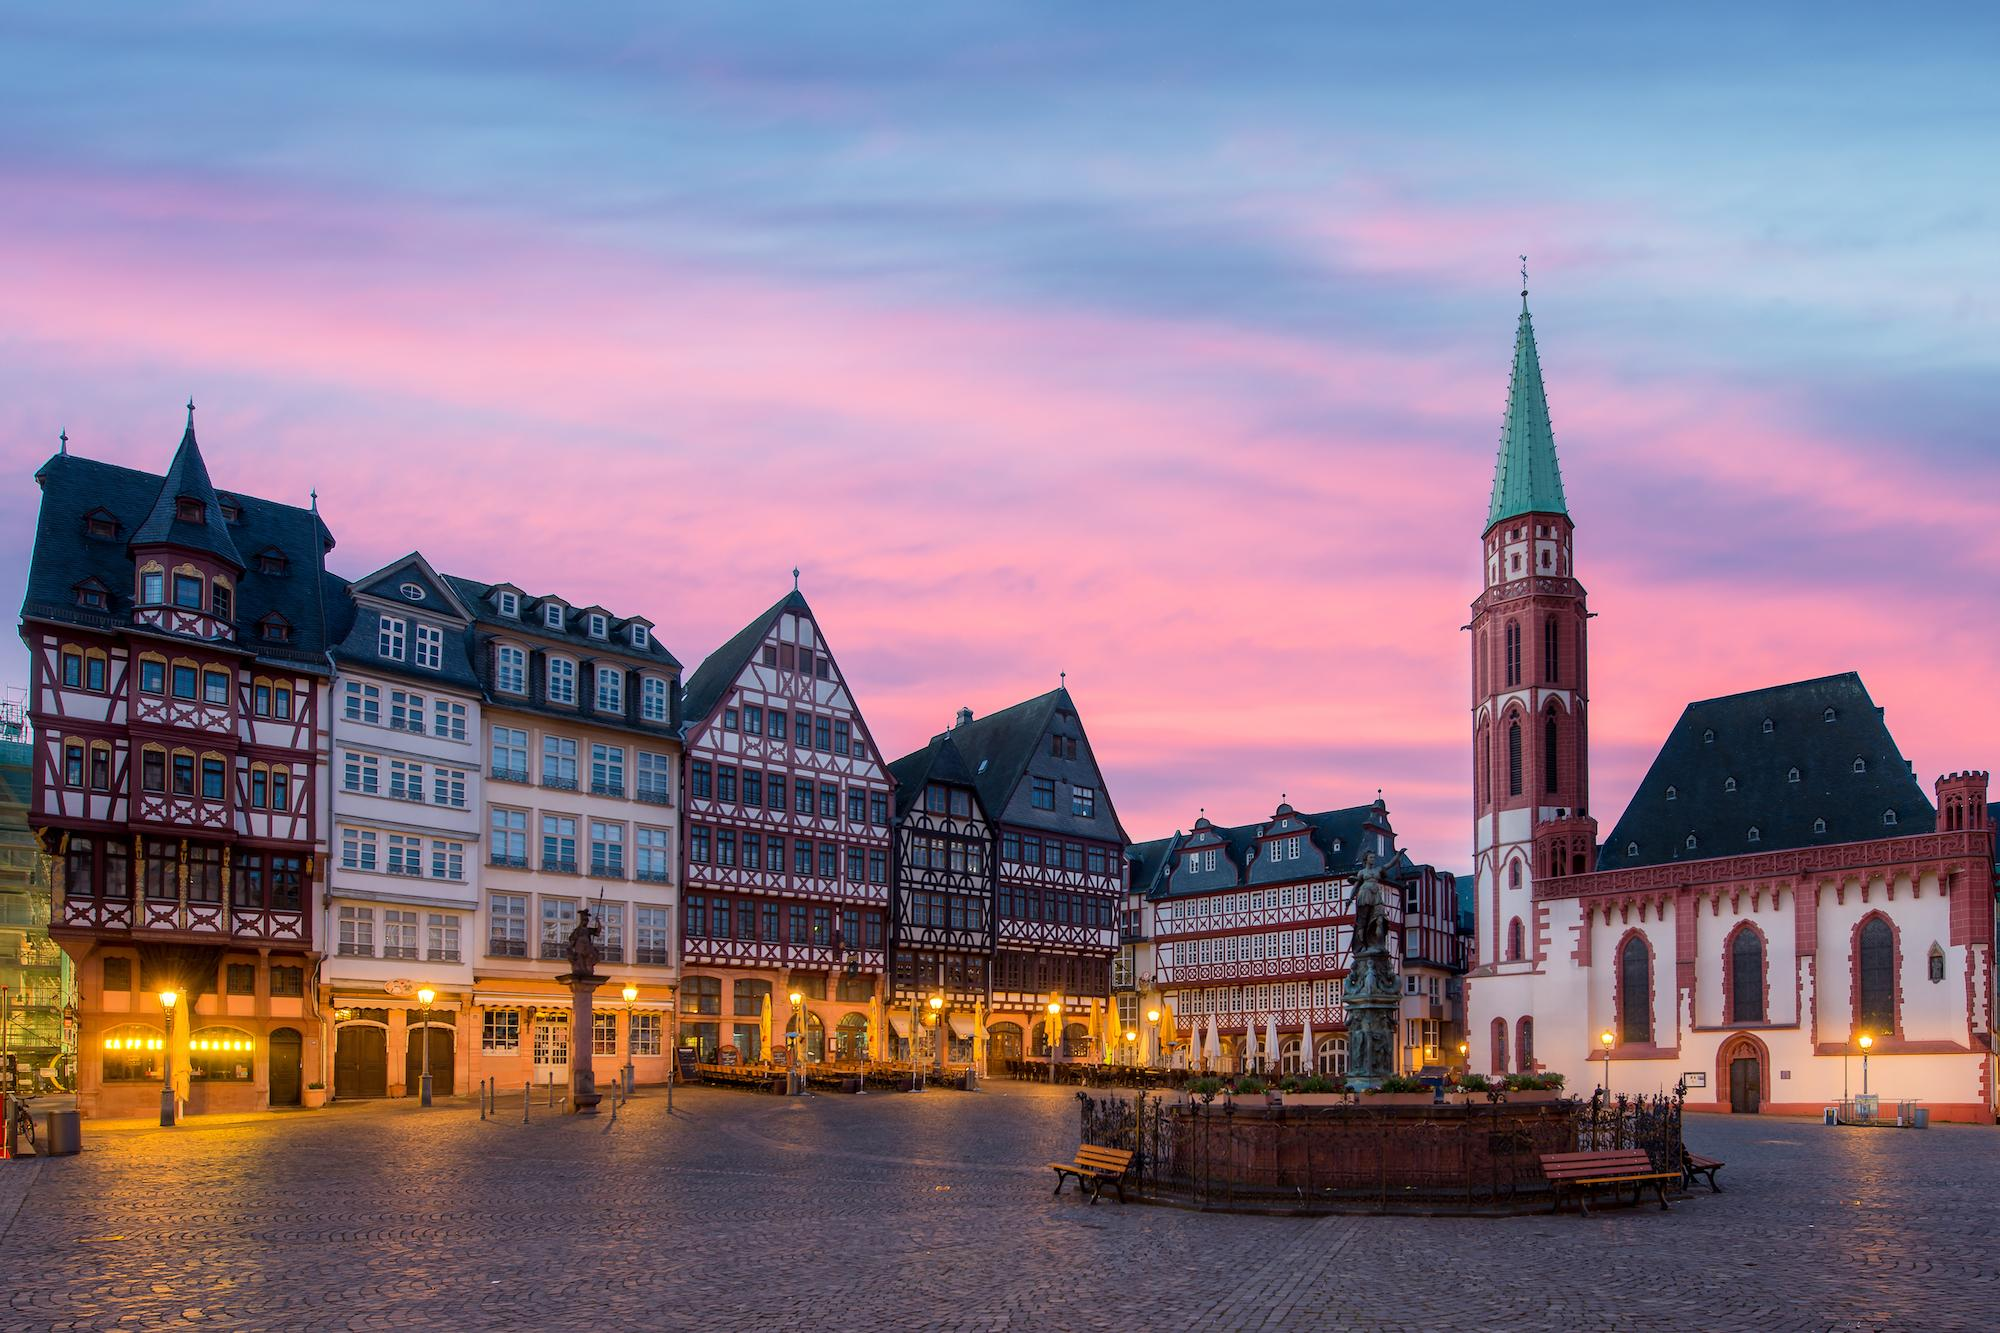 European Society for Blood and Marrow Transplantation Annual Meeting 2019 in Frankfurt